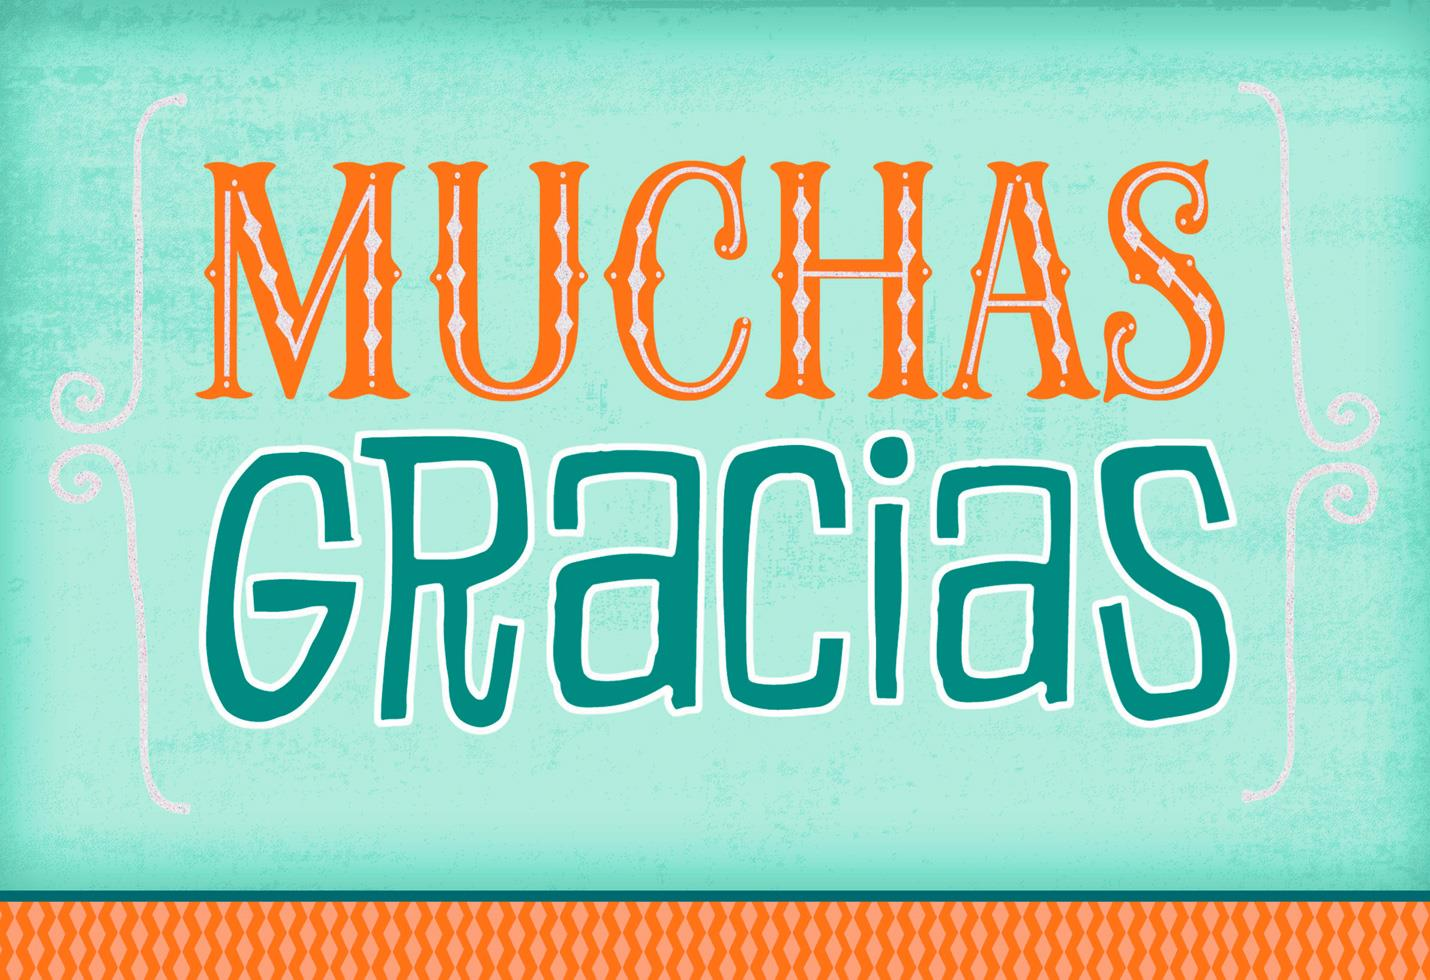 Many Thanks Spanish-Language Thank You Card - Greeting Cards ...